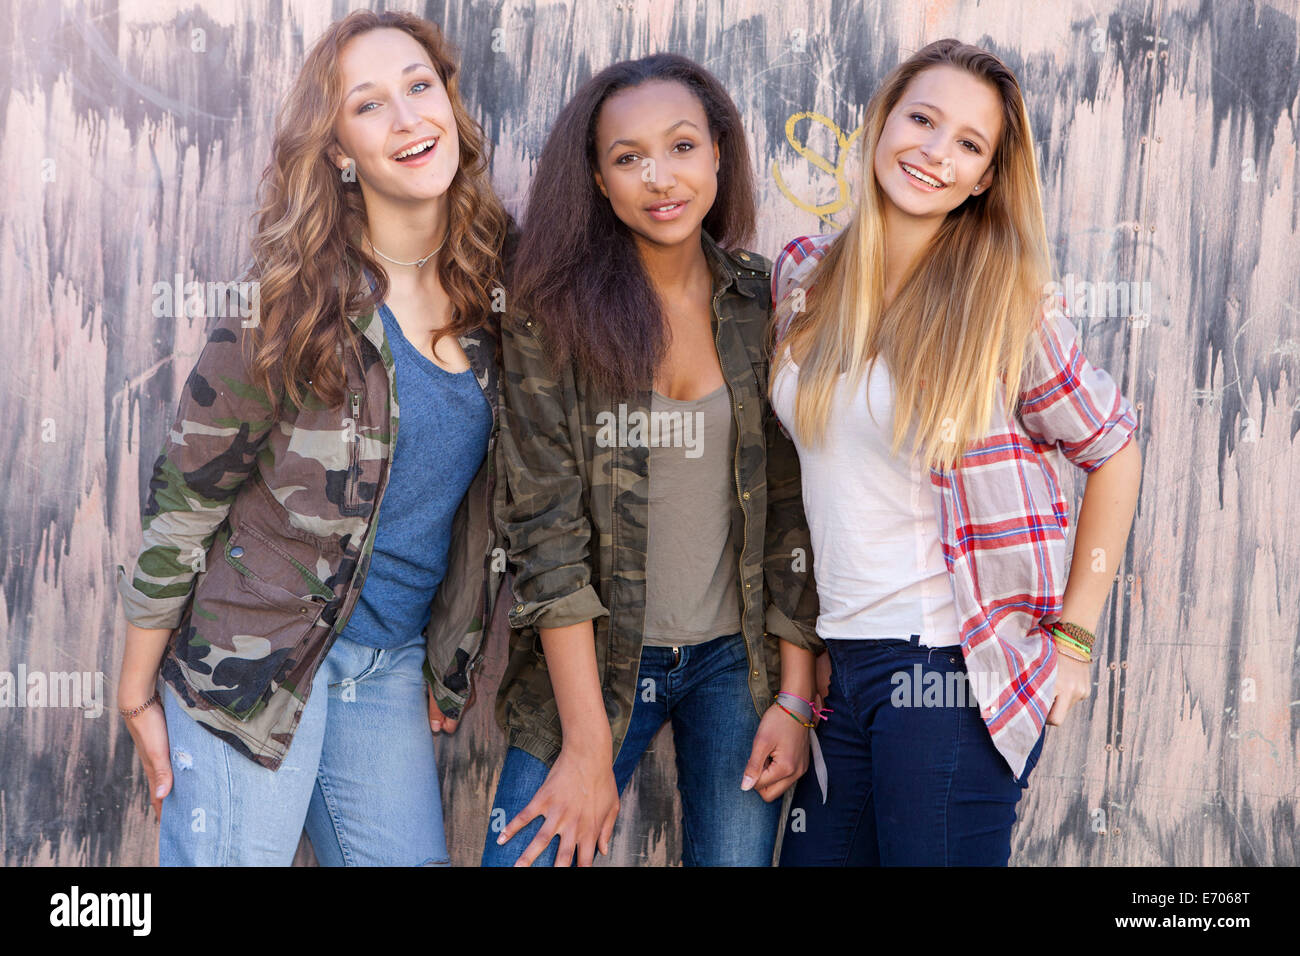 Teenage girls by wall with drip mark pattern - Stock Image